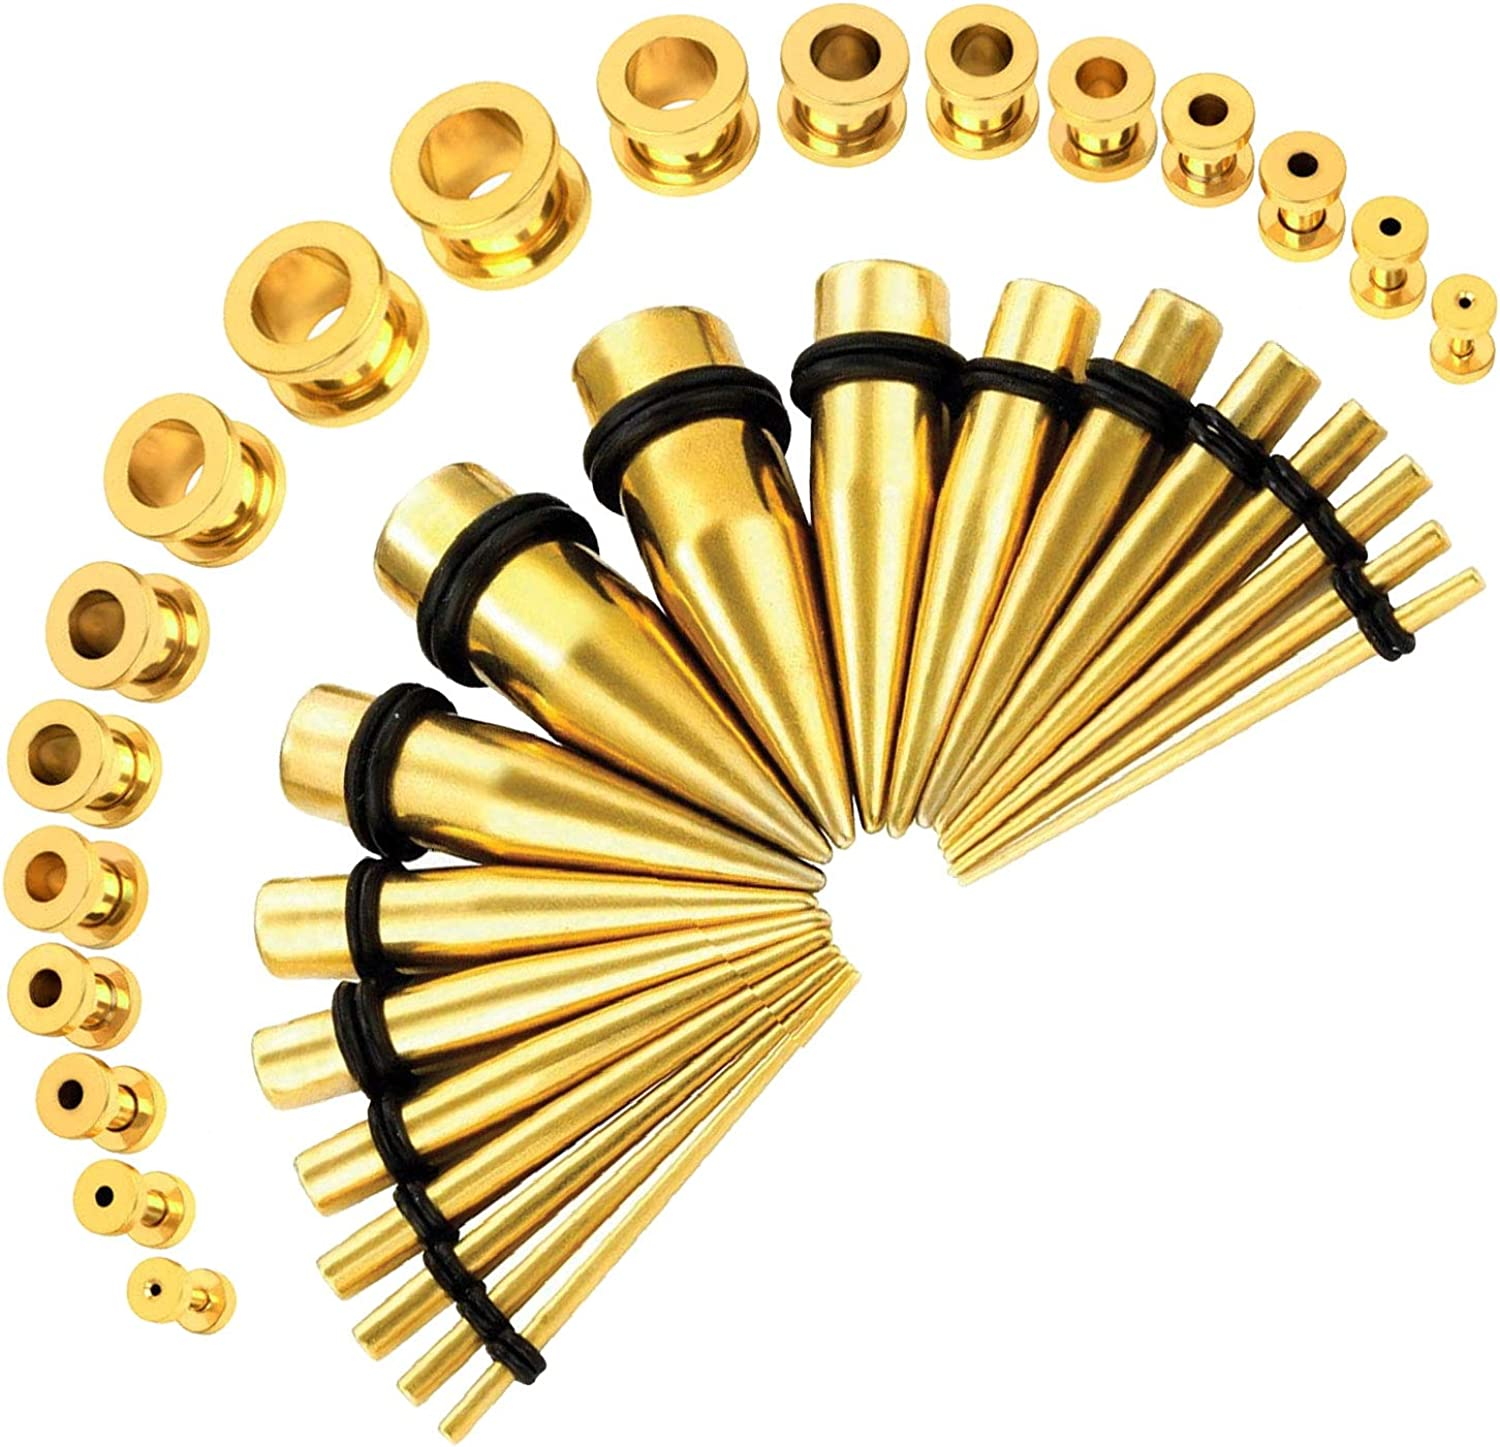 Tan Stic New Pair Pair of Screw on Picture Plugs gauges Rainbow